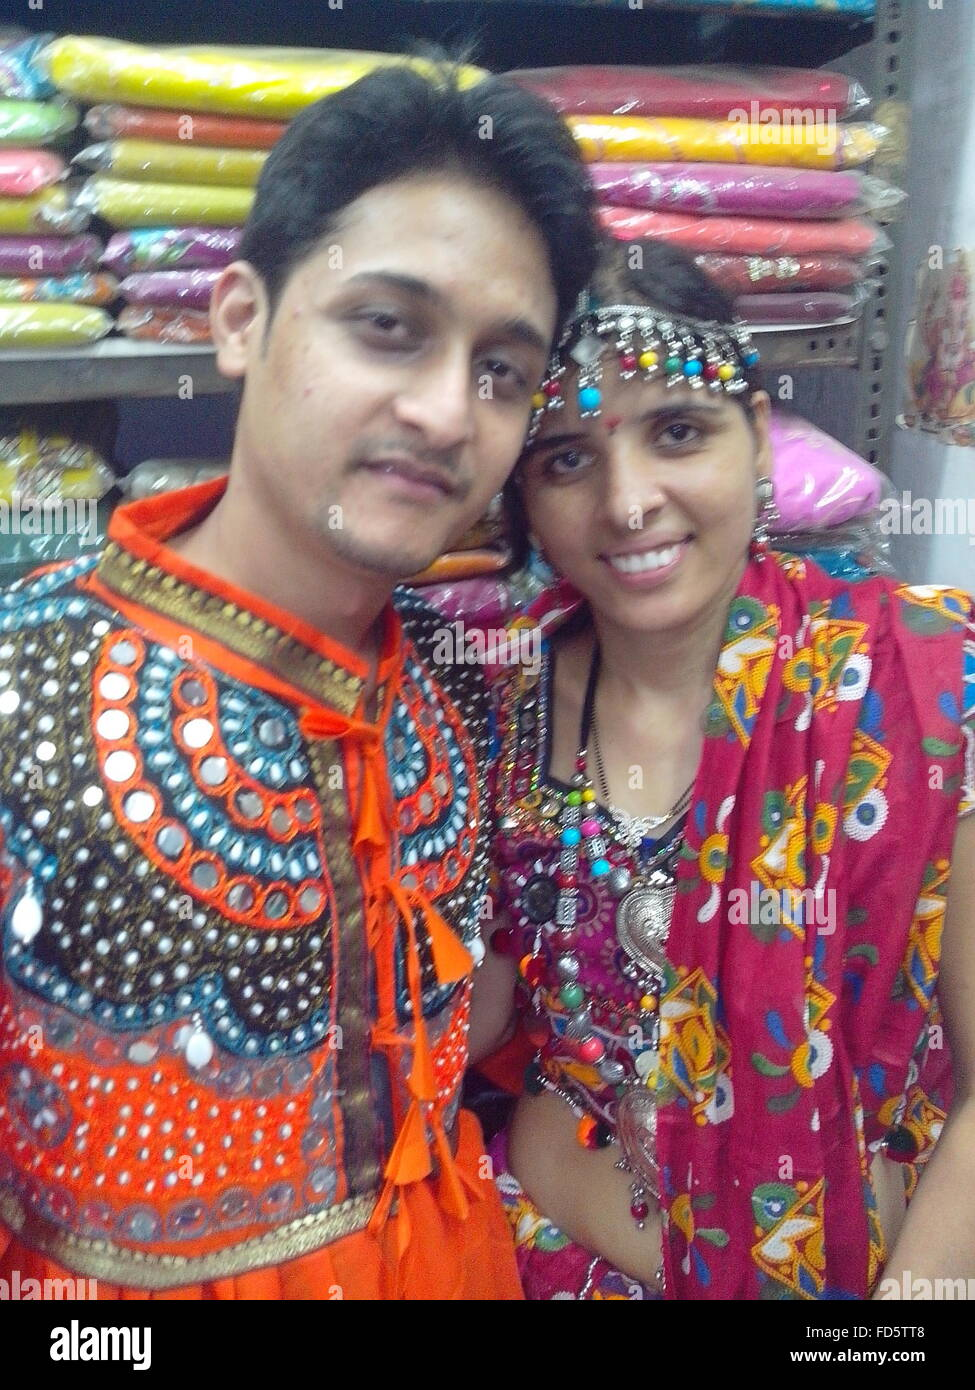 Portrait Of Smiling Young Couple Wearing Traditional Clothe While Standing In Shop - Stock Image